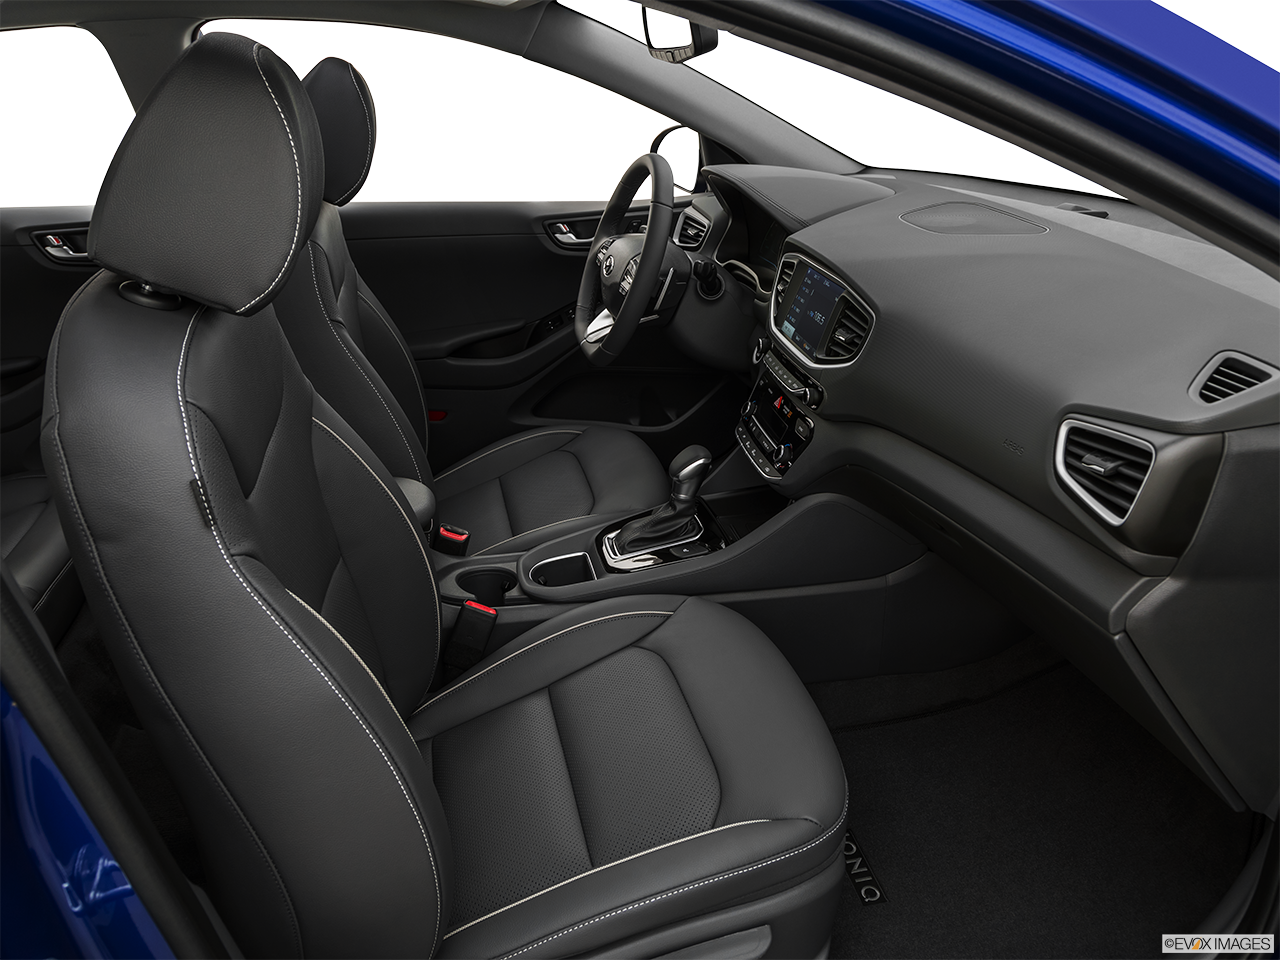 Interior view of the Hyundai Ioniq Plug-In Hybrid